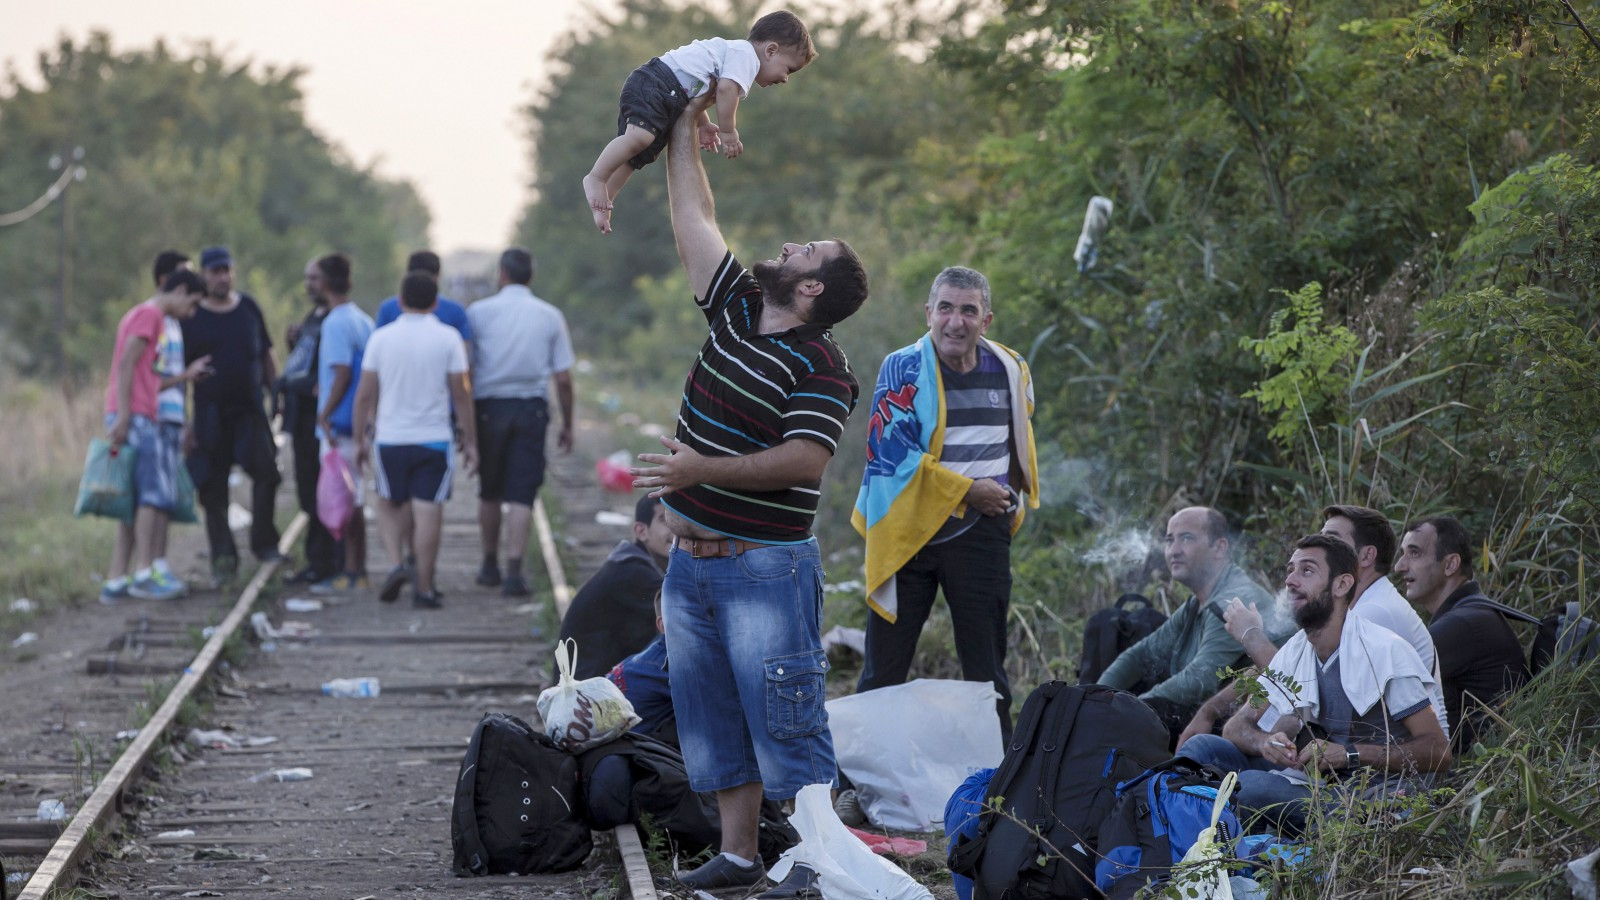 A migrant, hoping to cross into Hungary, plays with a childA migrant, hoping to cross into Hungary, plays with a child.